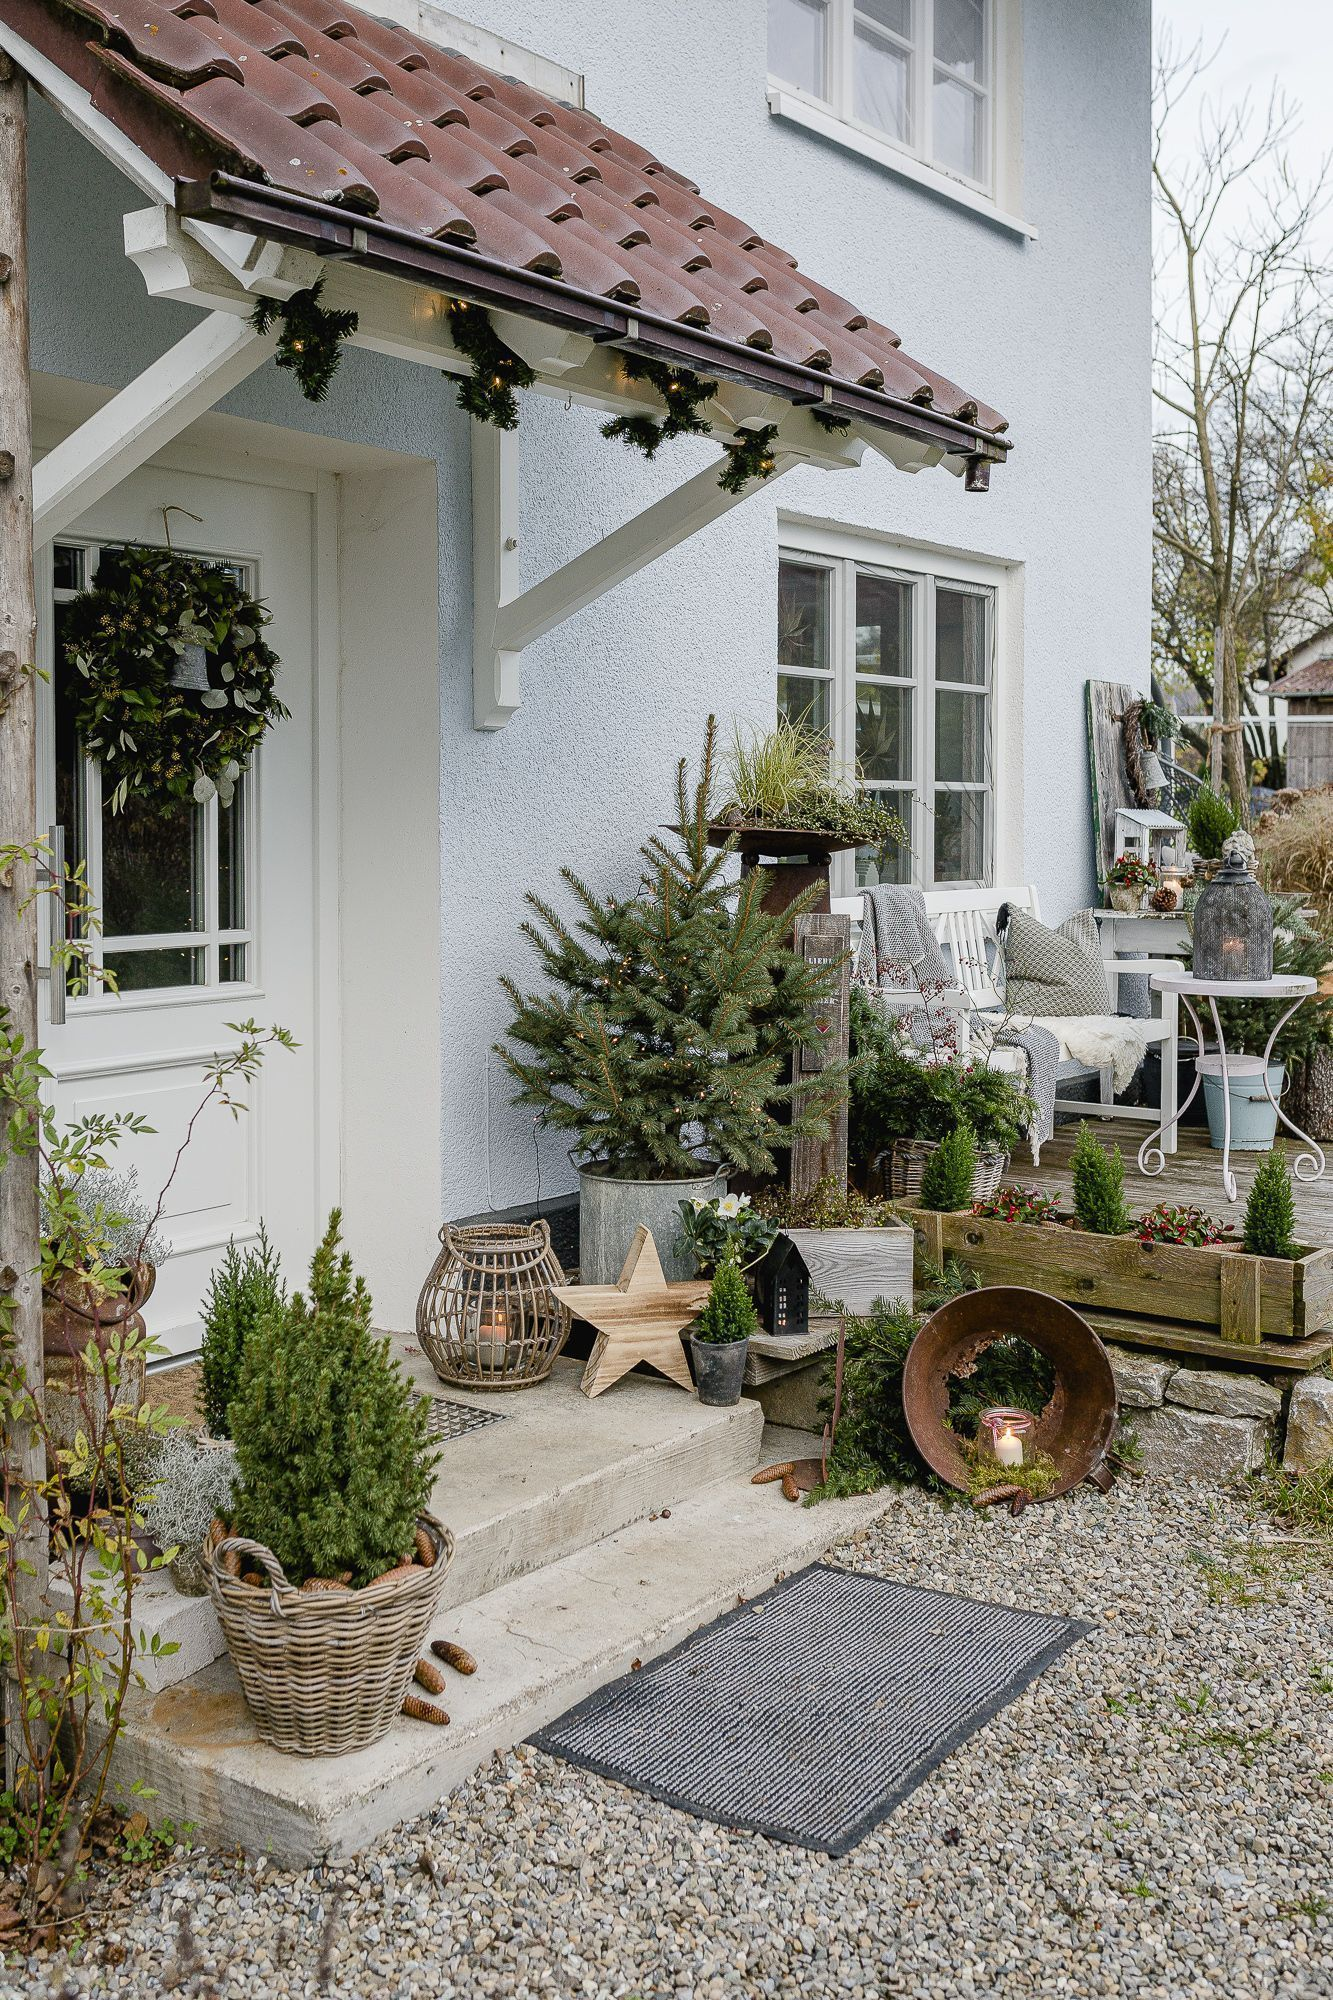 Christmas mood in the garden and on the terrace - conservatory ideas#christmas #... ,  #christmas #Conservatory #Garden #gardenlighting #ideaschristmas #Mood #rooftopgarden #rosegarden #Terrace #terracegarden